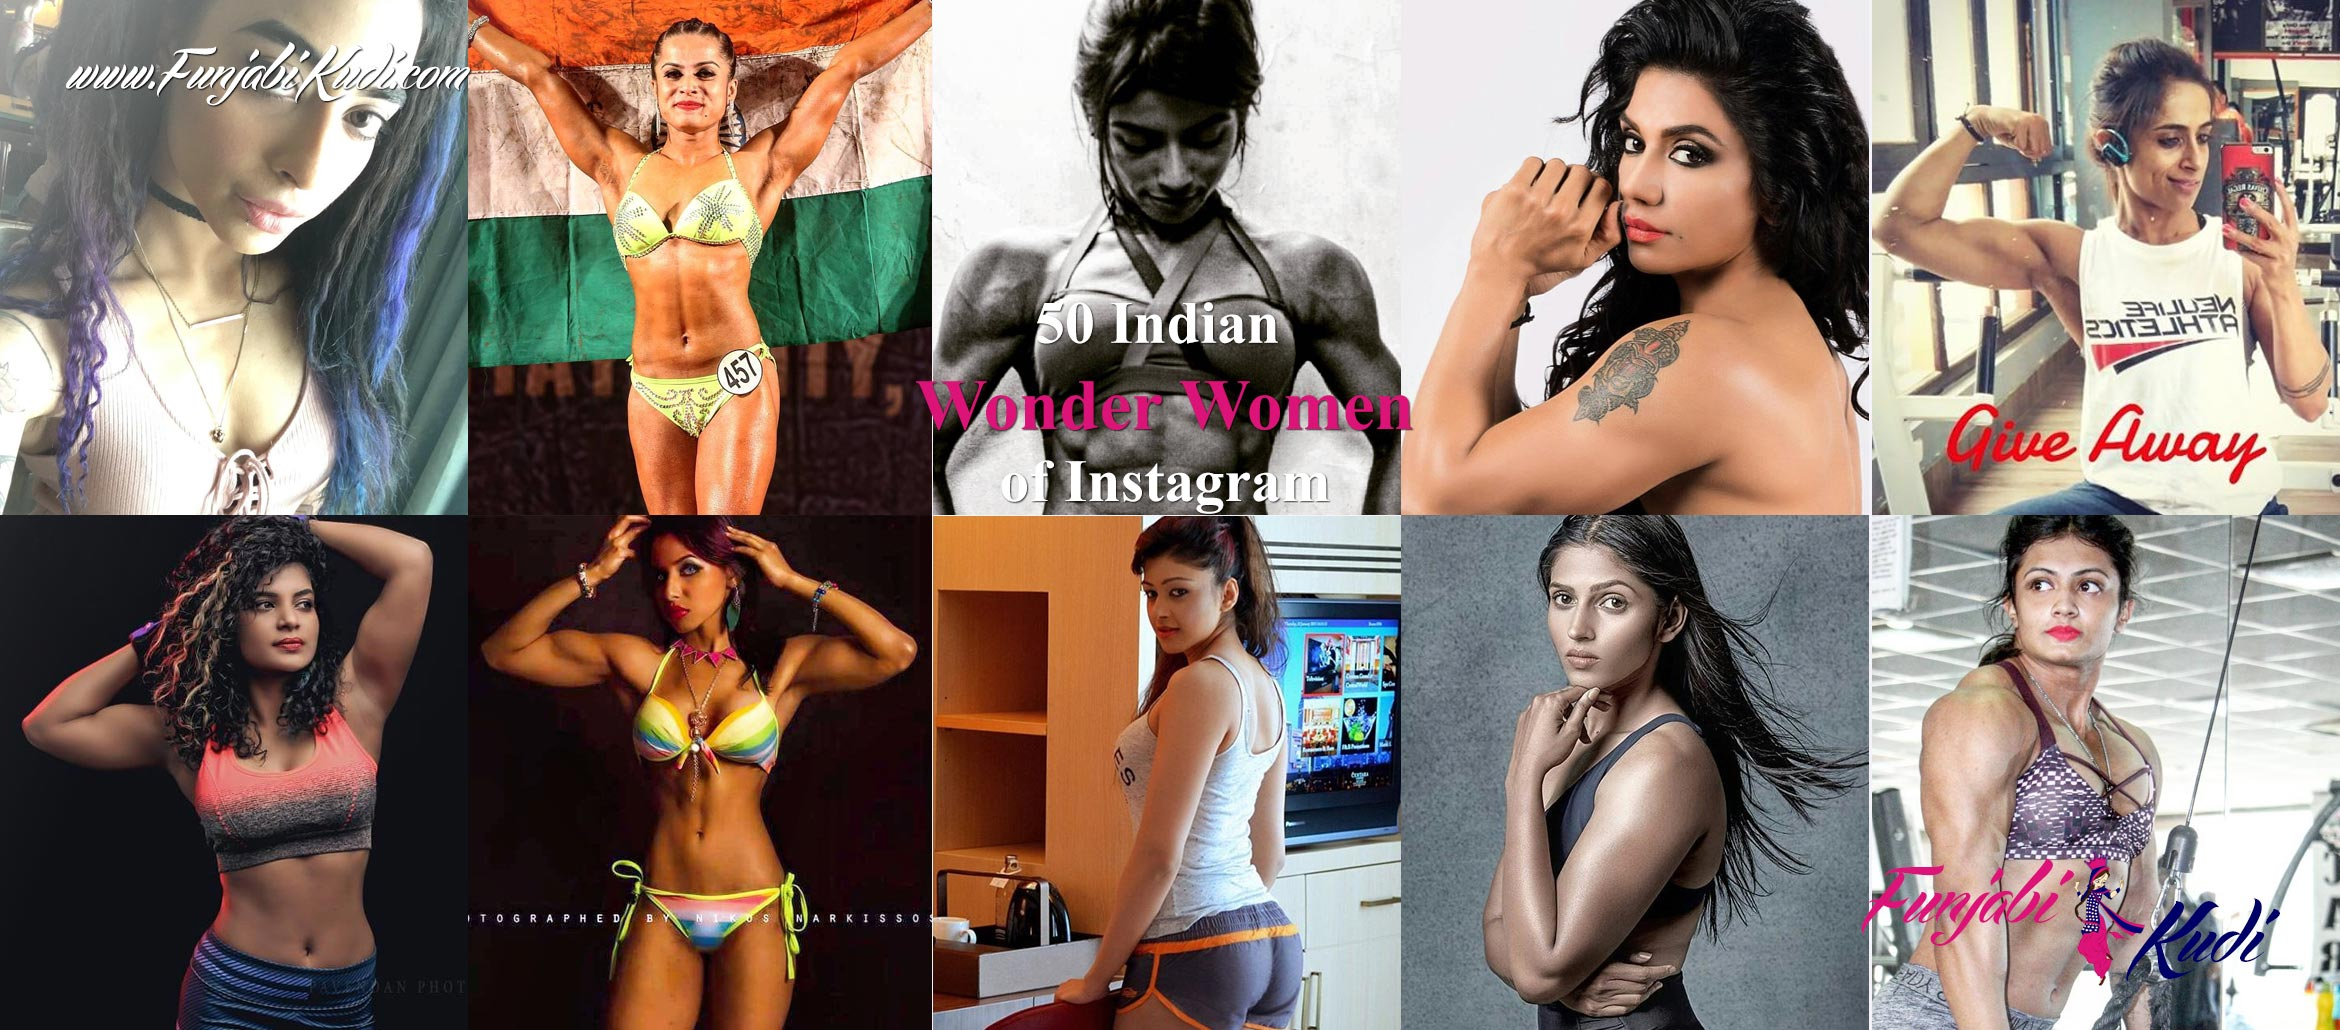 50 Indian Wonder Women of Instagram Which Will Inspire You